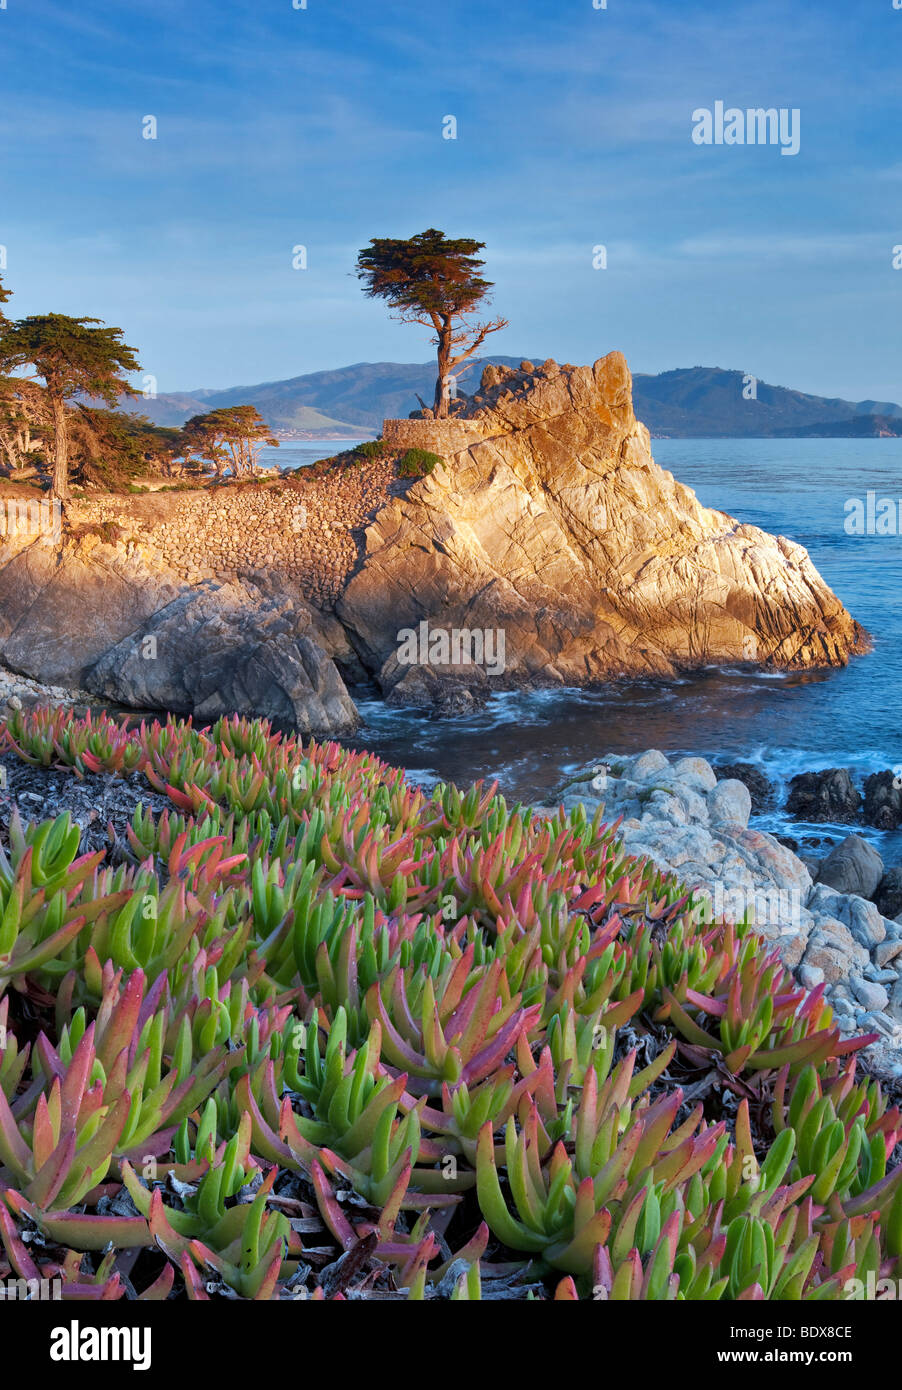 Lone Monterey Cypress tree and Pacific Ocean with Ice Plant. 17 Mile Drive. Pebble Beach, California - Stock Image